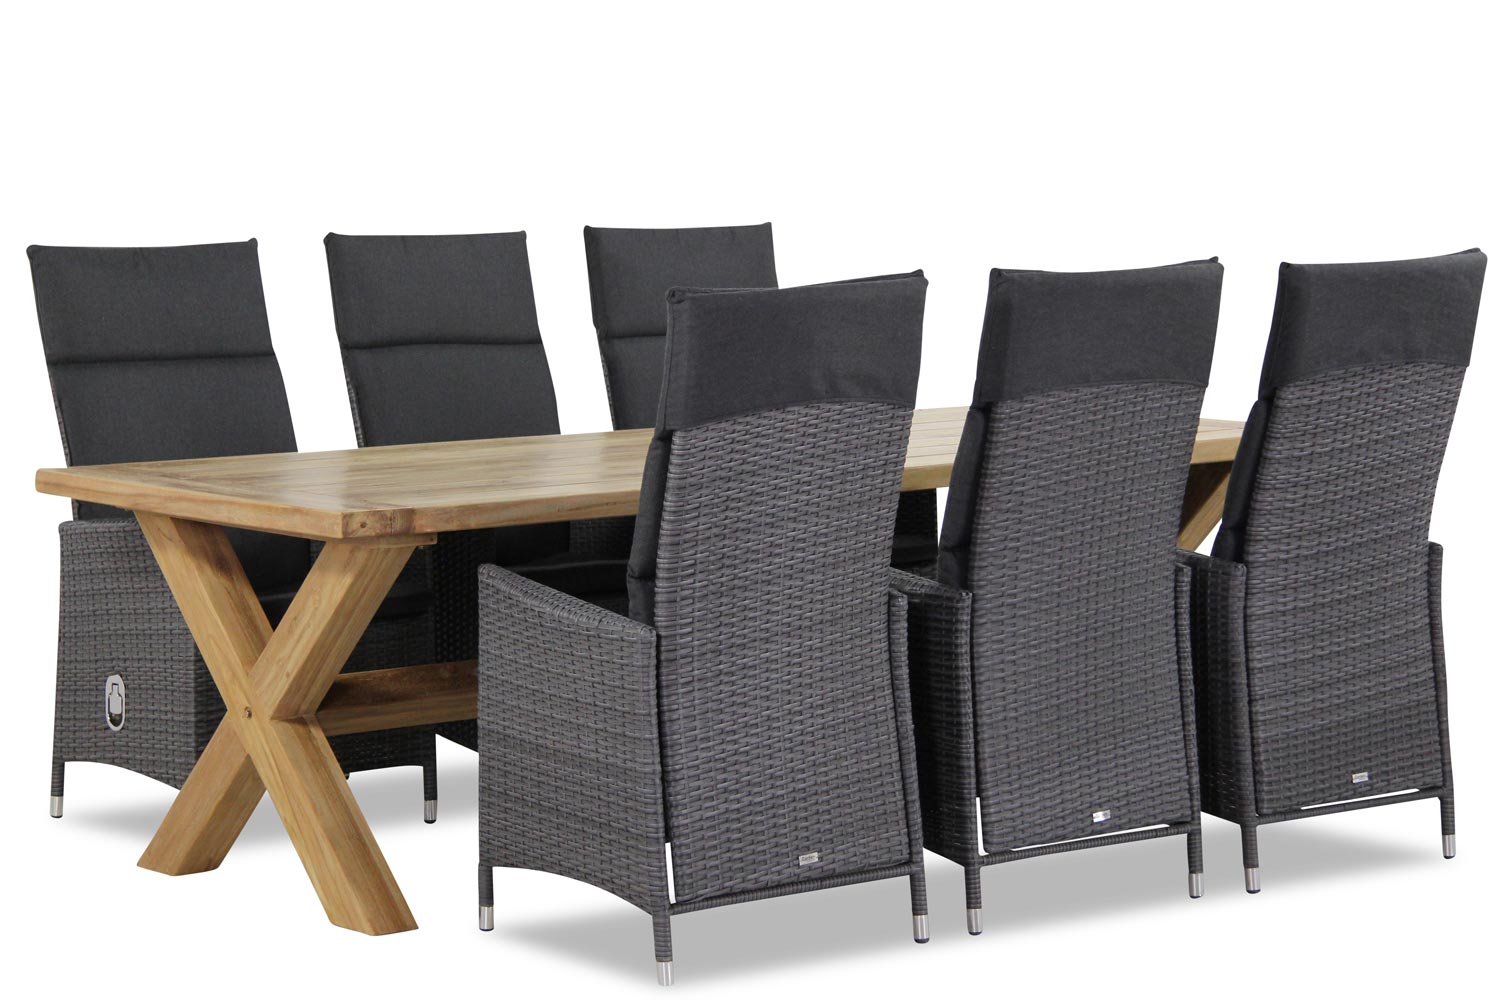 Wicker Garden Collections Denver/Weisshorn 240 cm dining tuinset 7-delig verstelbaar